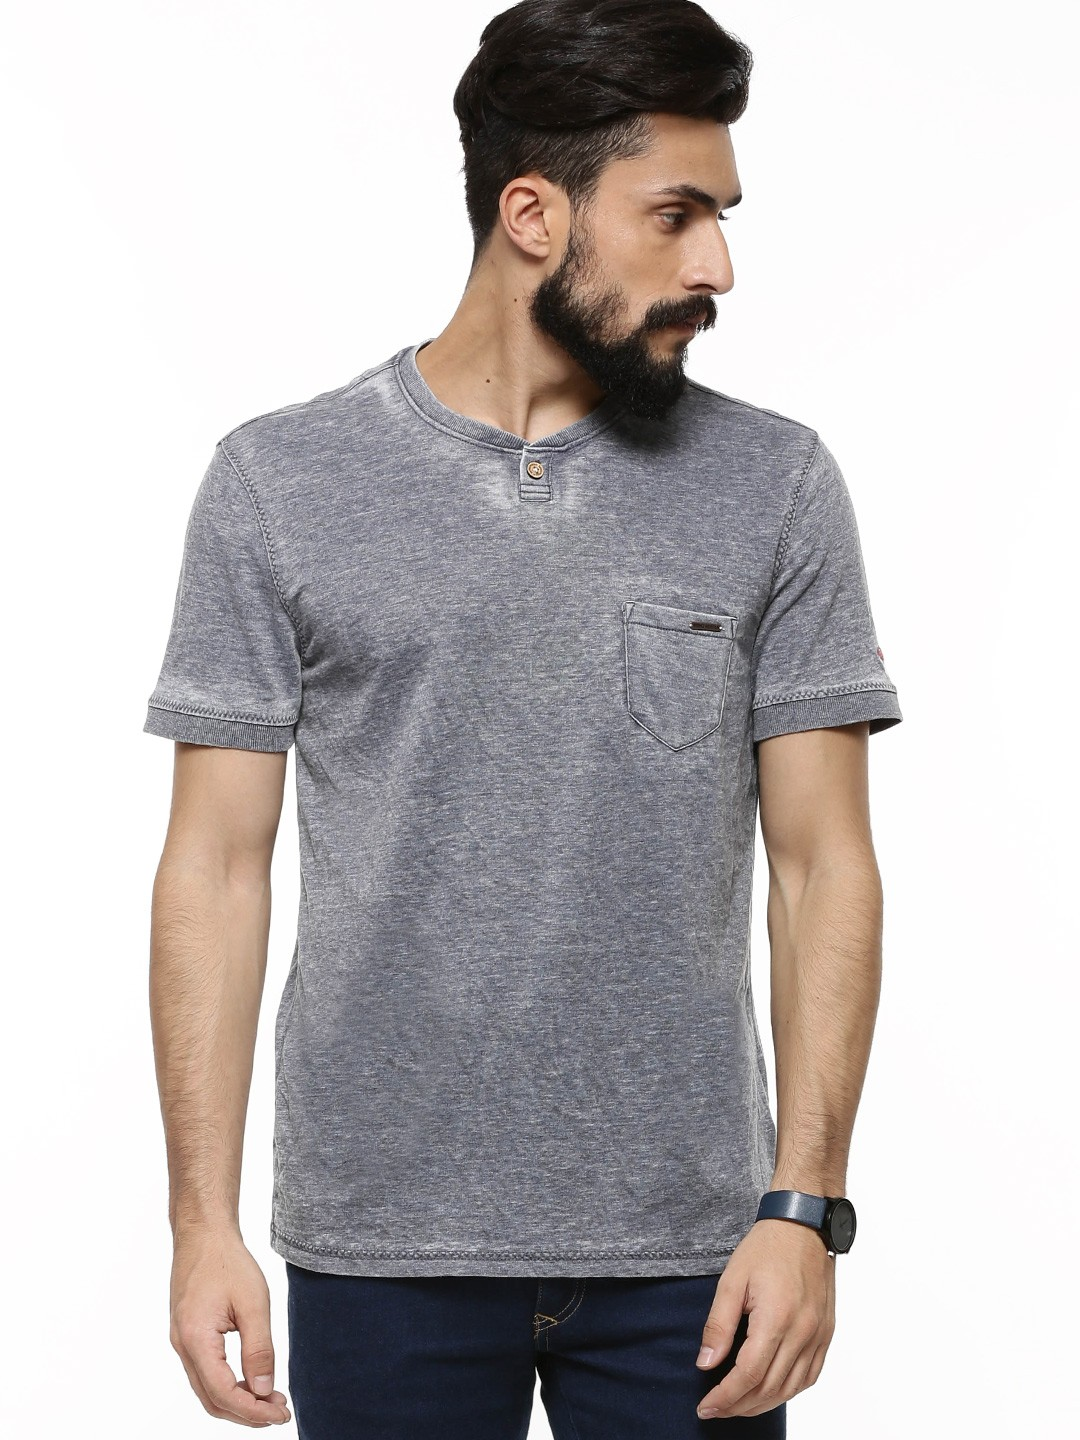 Buy being human oil wash henley t shirt as seen on salman for Being human t shirts buy online india